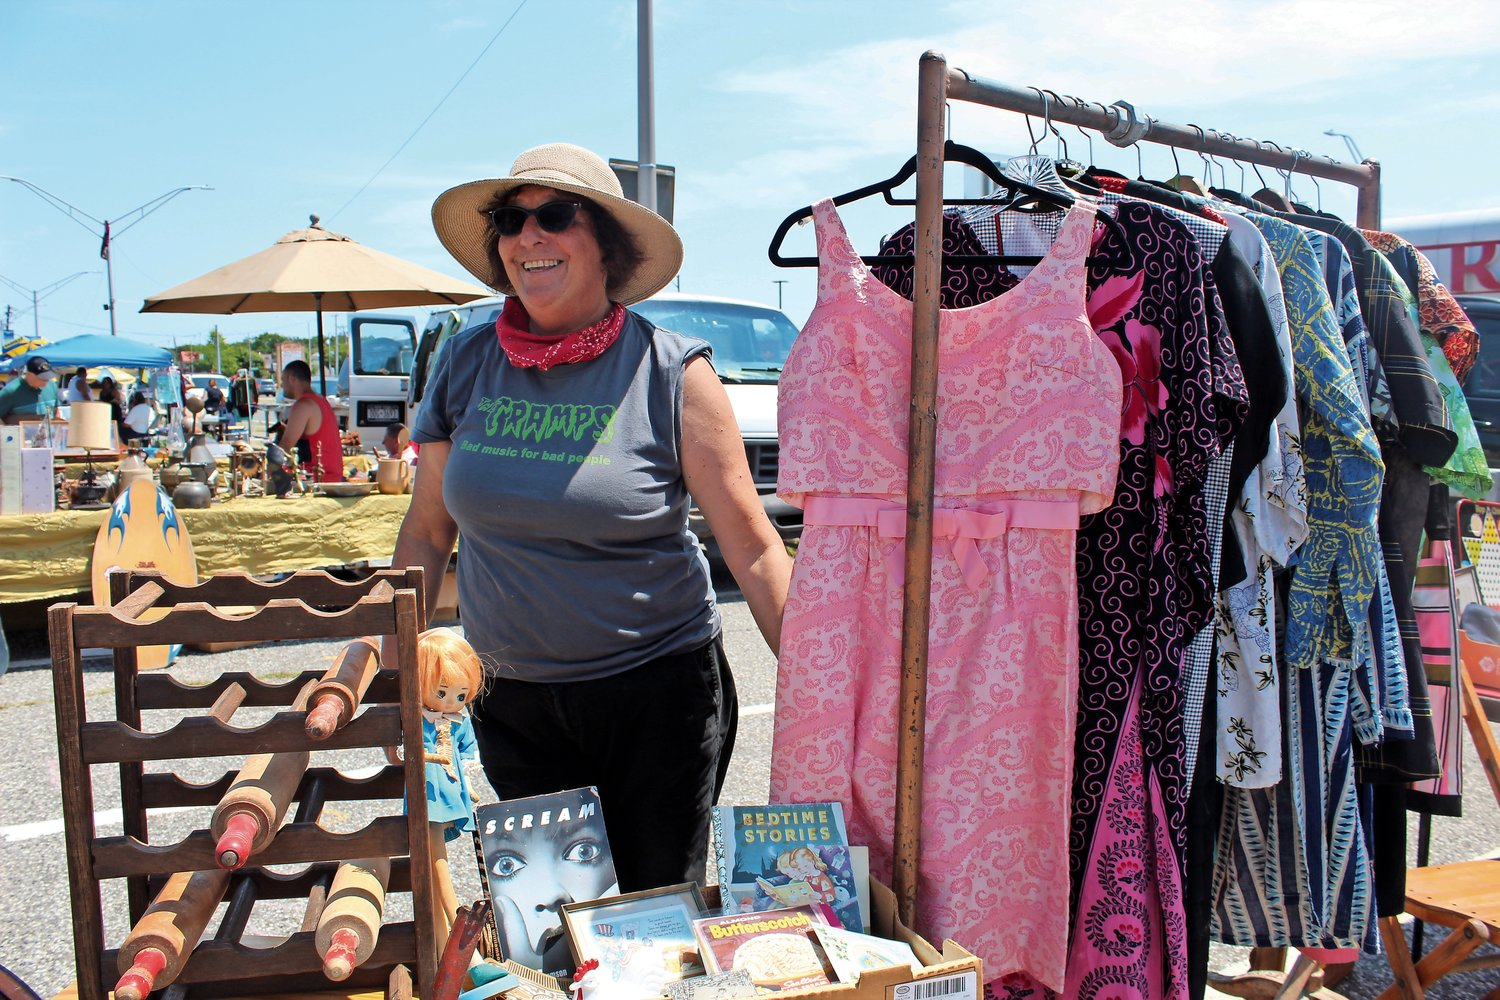 Merrie Dee, of Malverne, had her eyes on a pretty pink dress from the 1960s.